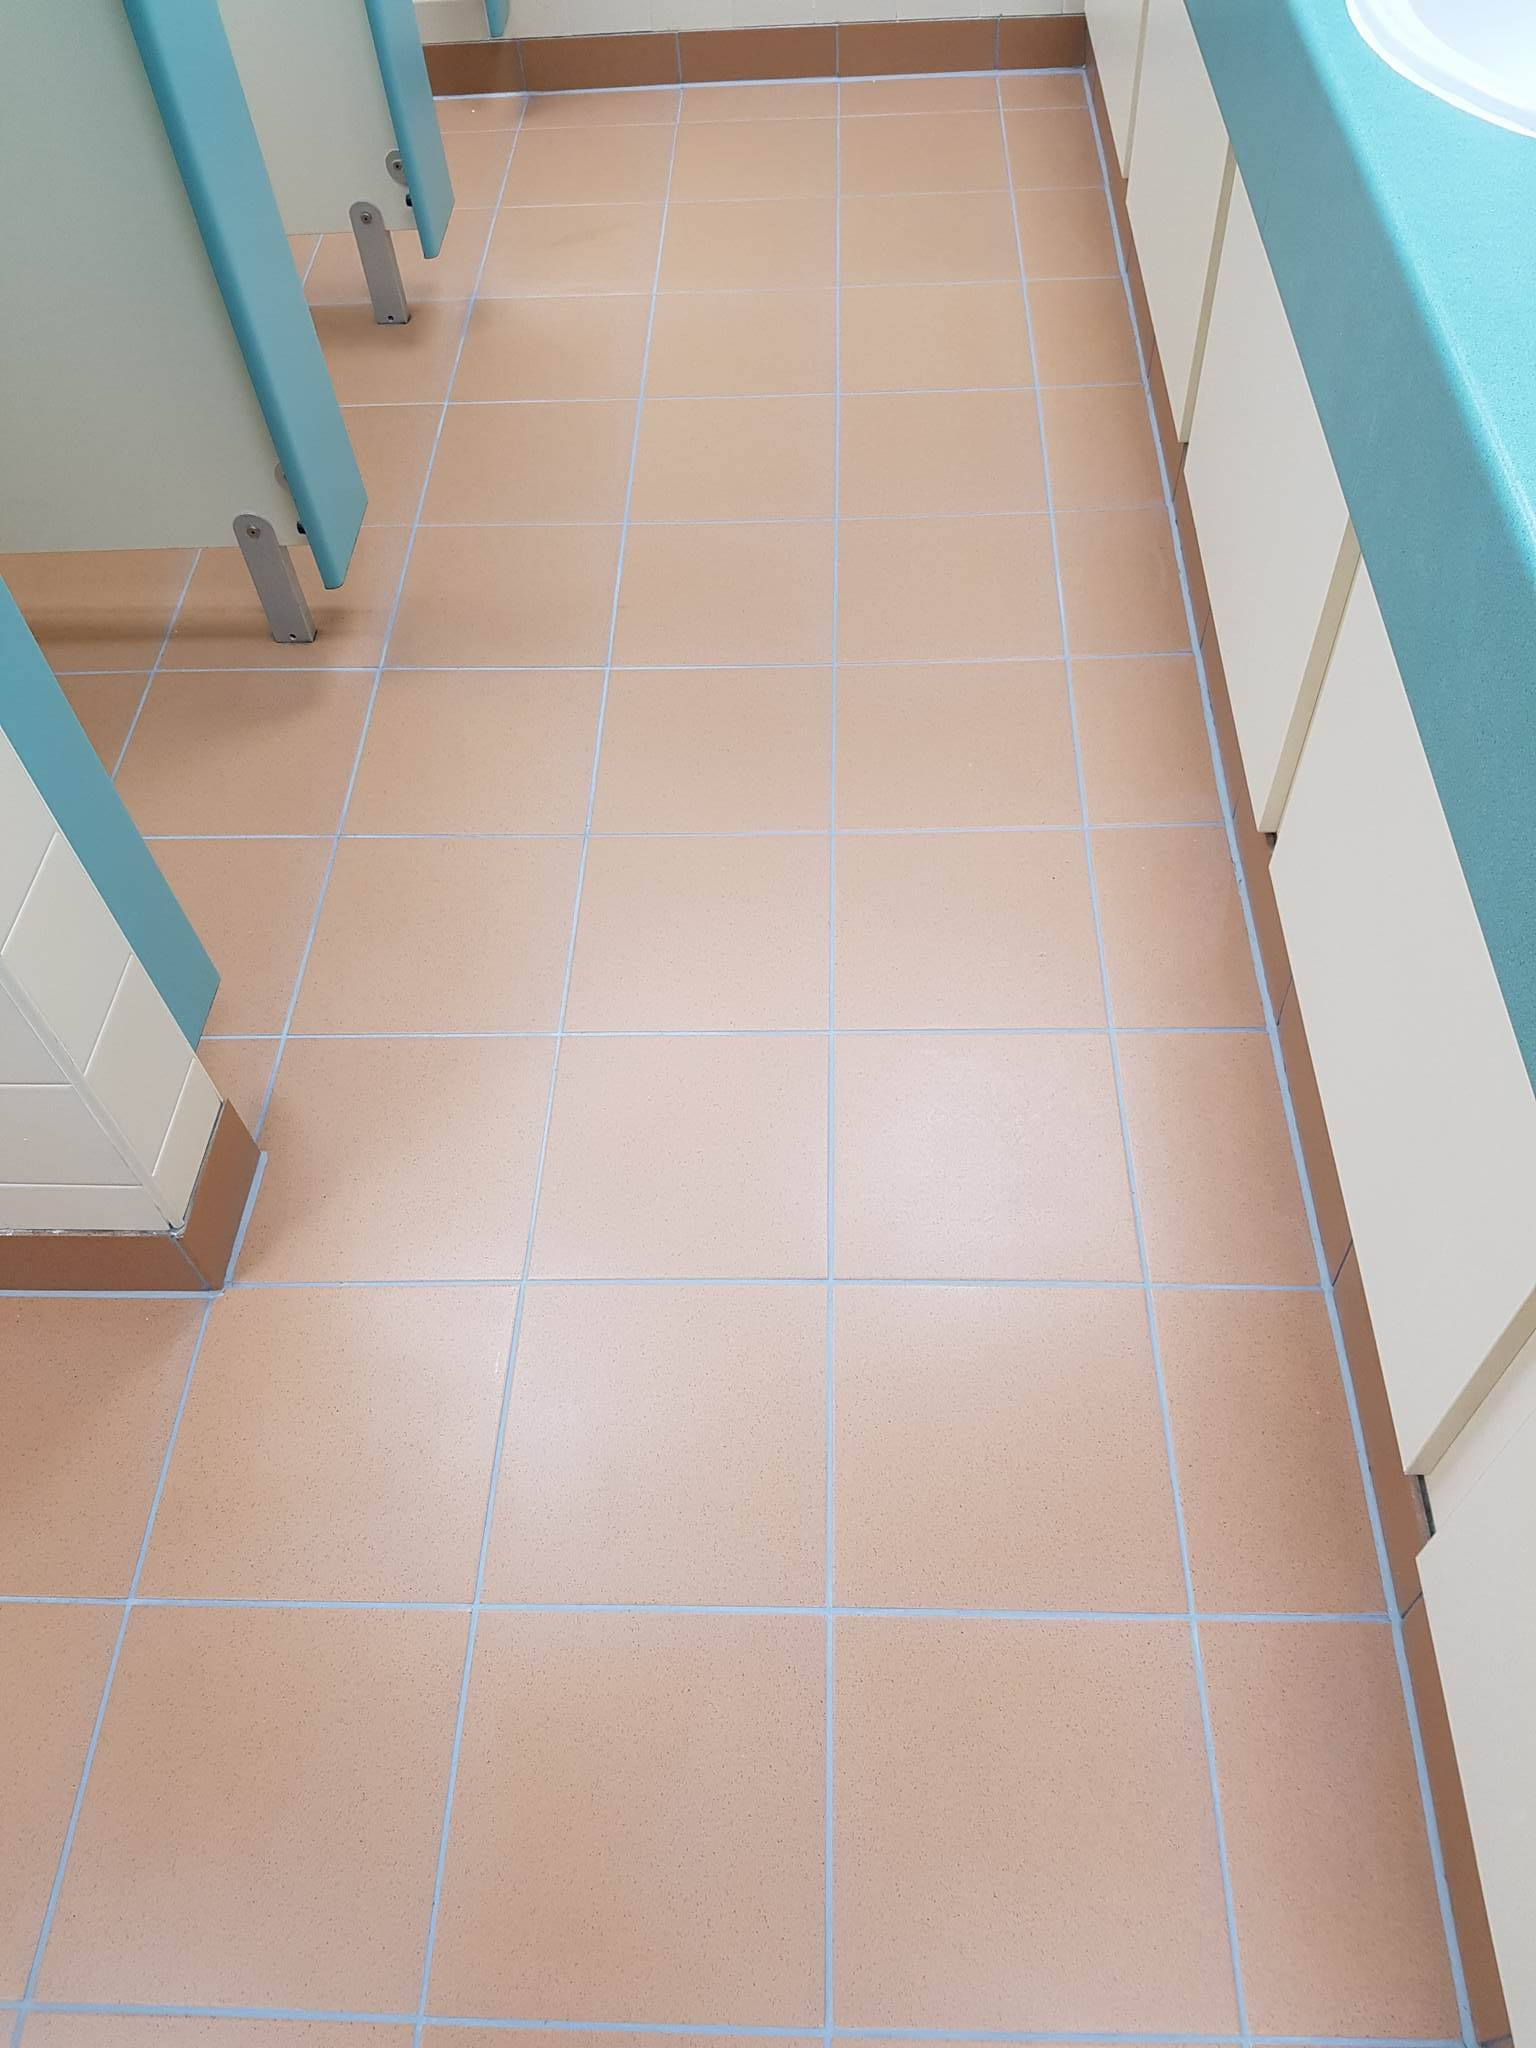 Toilet Floor at Corporate Offices Manchester After Grout Colouring